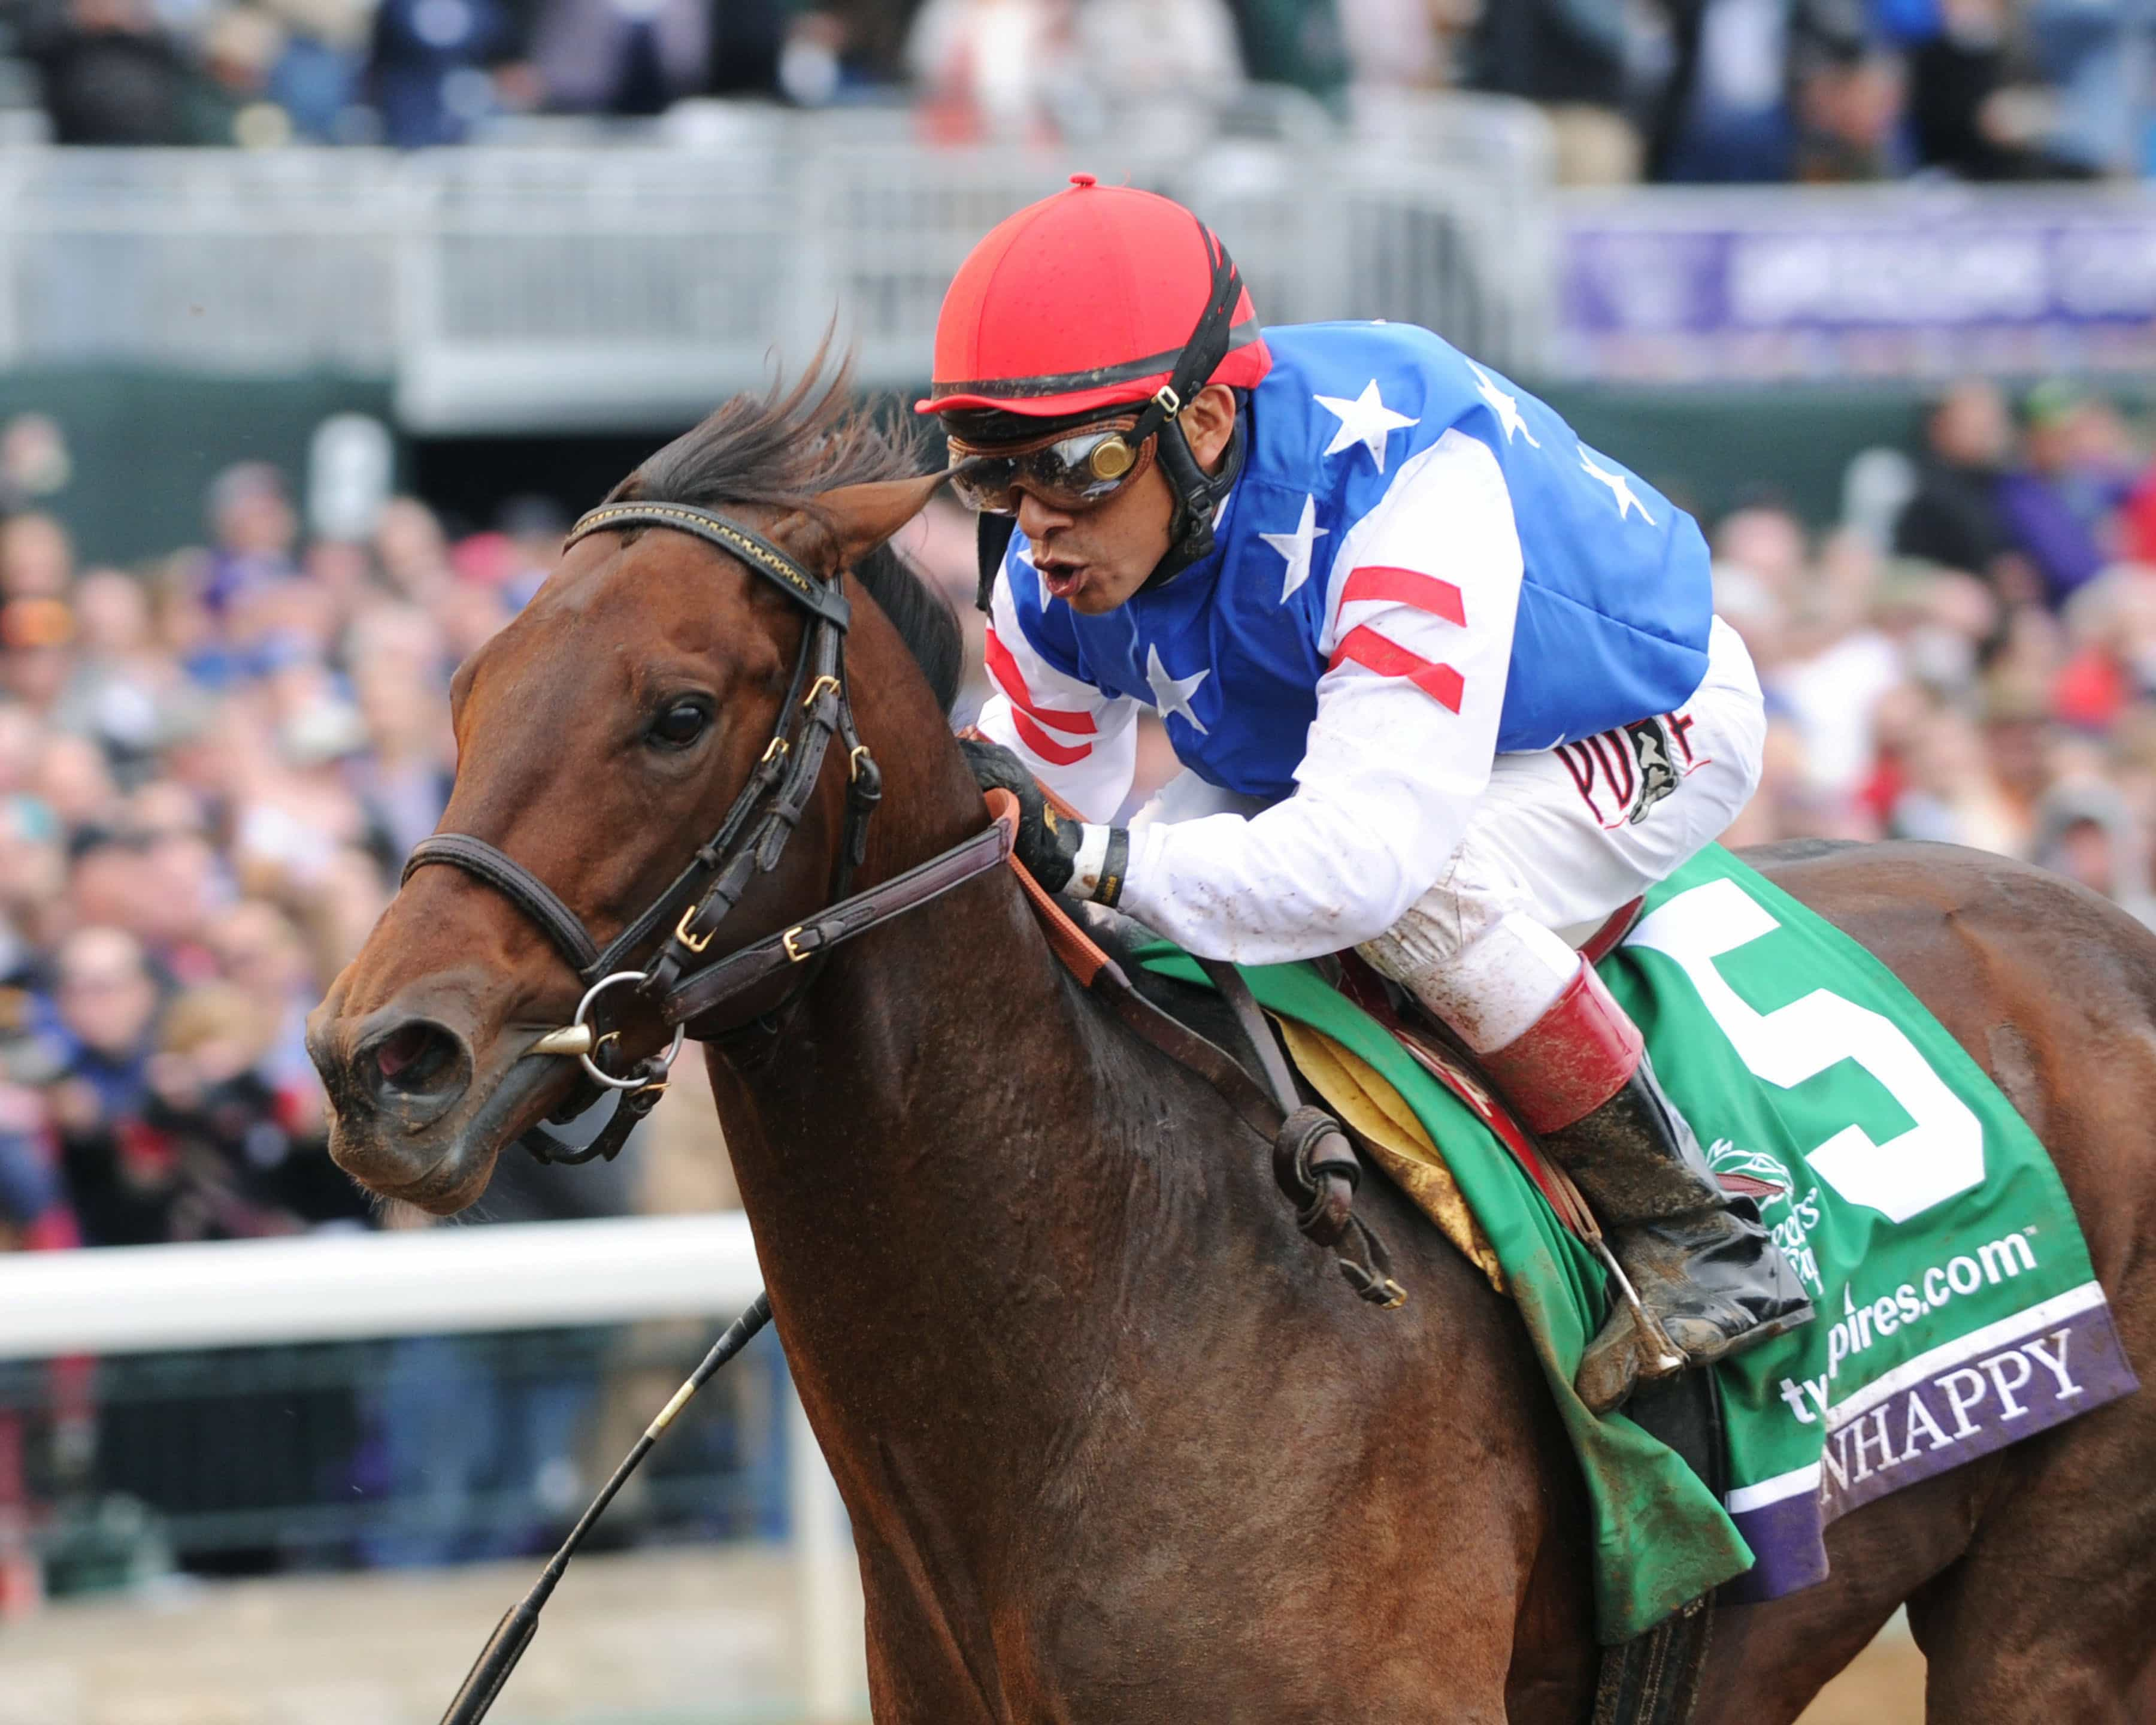 RUNHAPPY TwinSpires Breeders' Cup Sprint Gr I Keeneland Race Course     Lexington, Kentucky October 31, 2015    Race #07 Purse $1,500,000 6 Furlongs  1:08.58 James McIngvale, Owner Maria Borell, Trainer Edgar Prado, Jockey Private Zone (2nd) Favorite Tale (3rd)  Order of Finish - 5, 13, 14, 7 Please Give Photo Credit To:  / Coady Photography